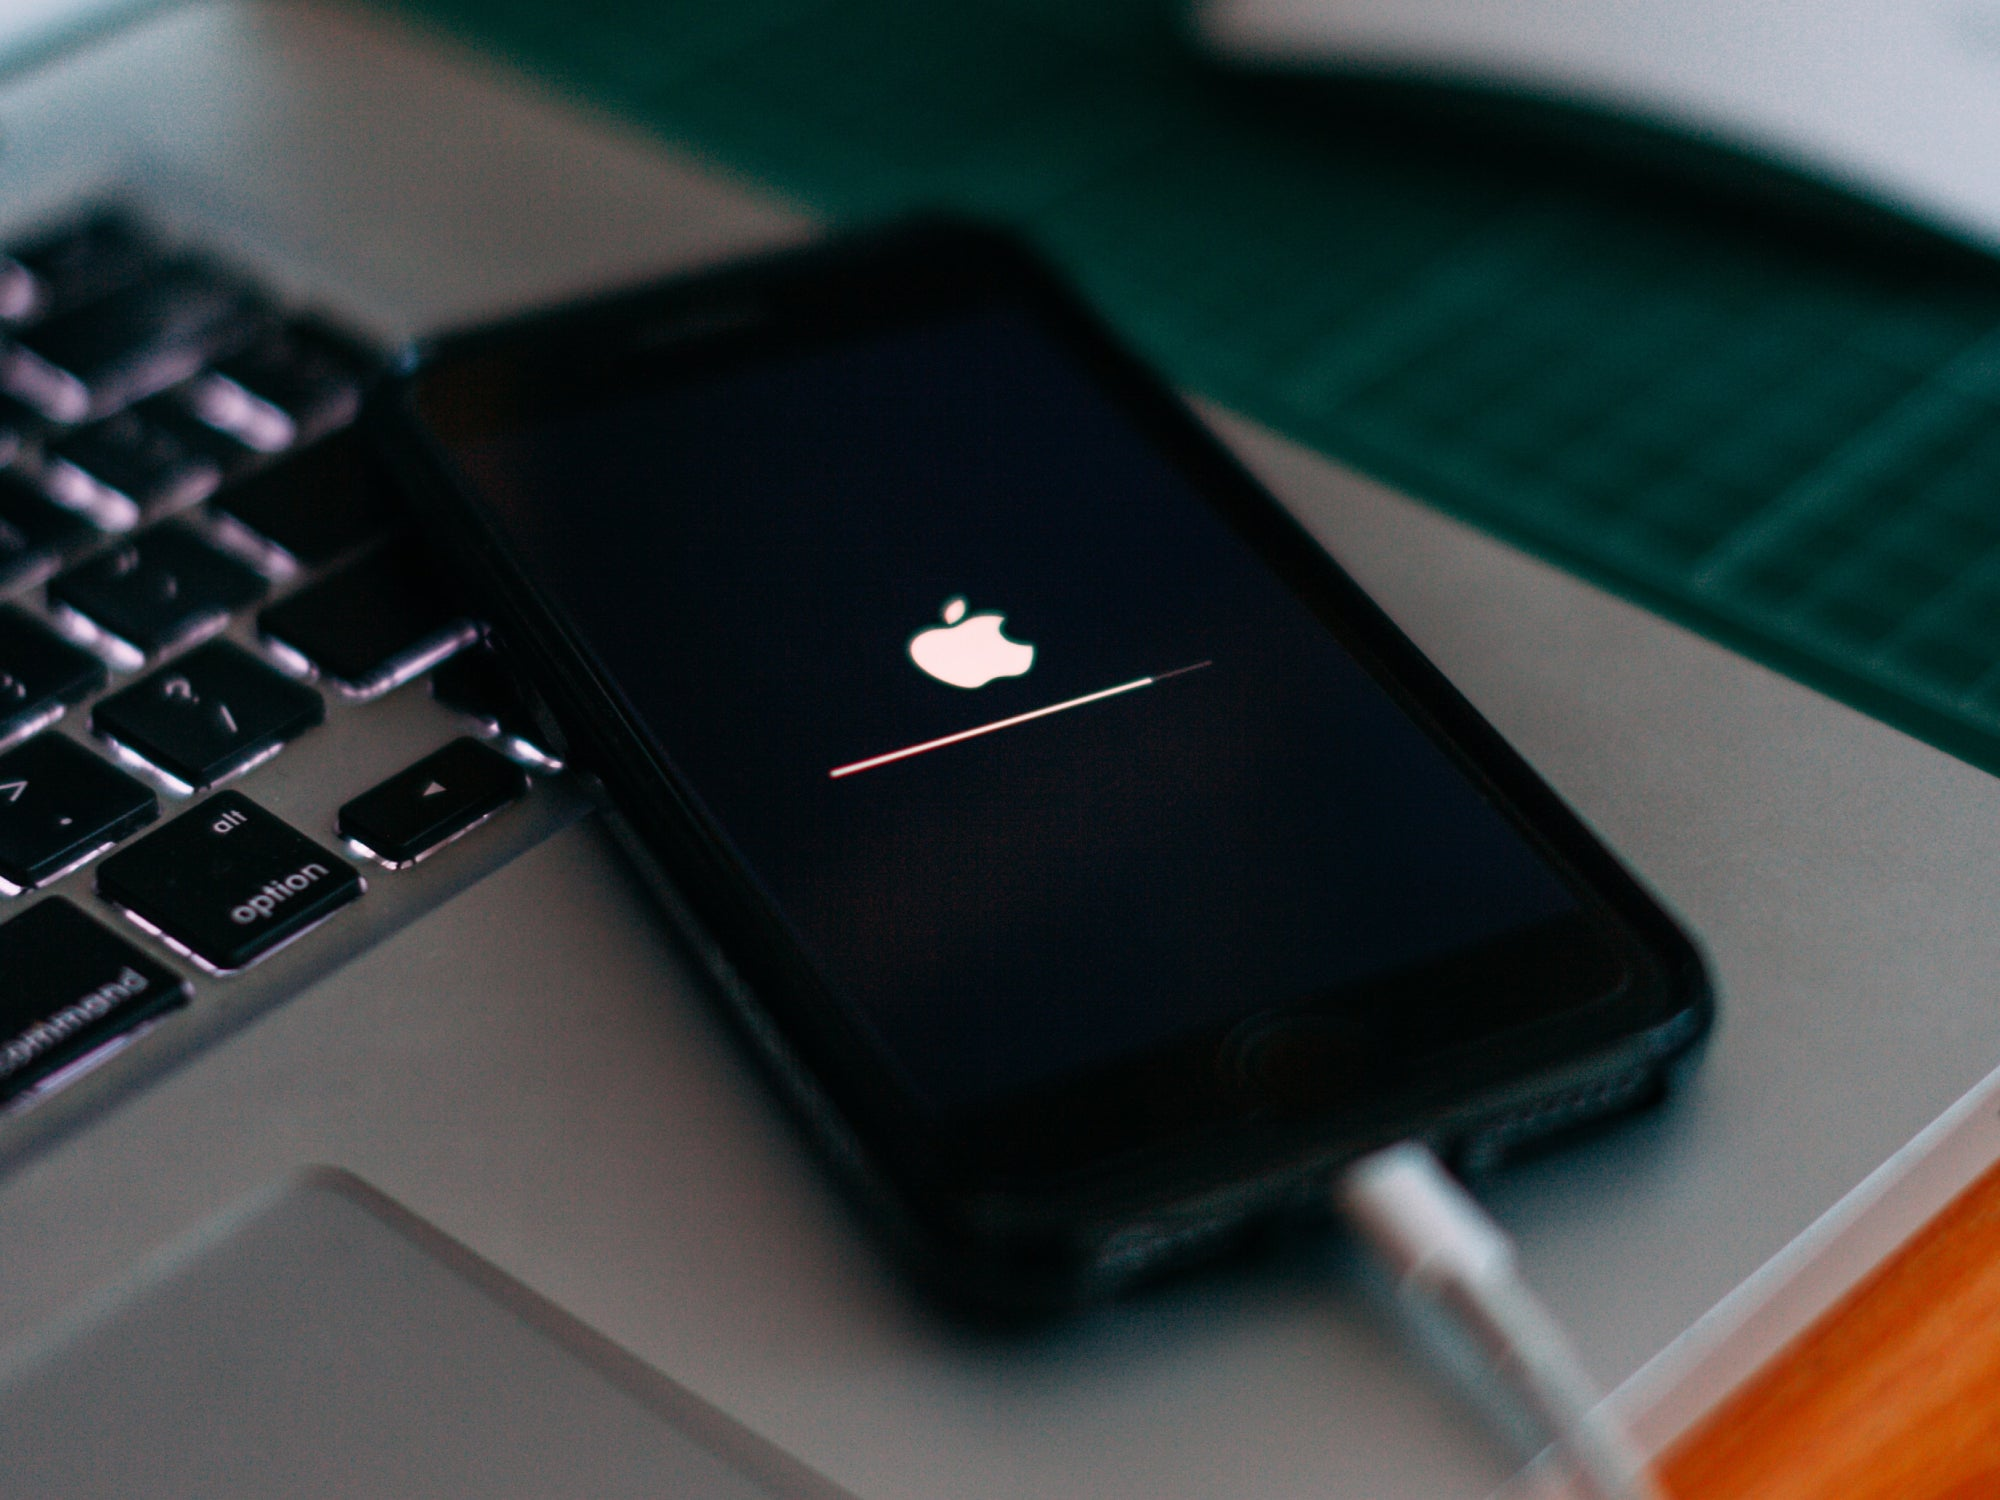 An iPhone plugged in and updating its software.